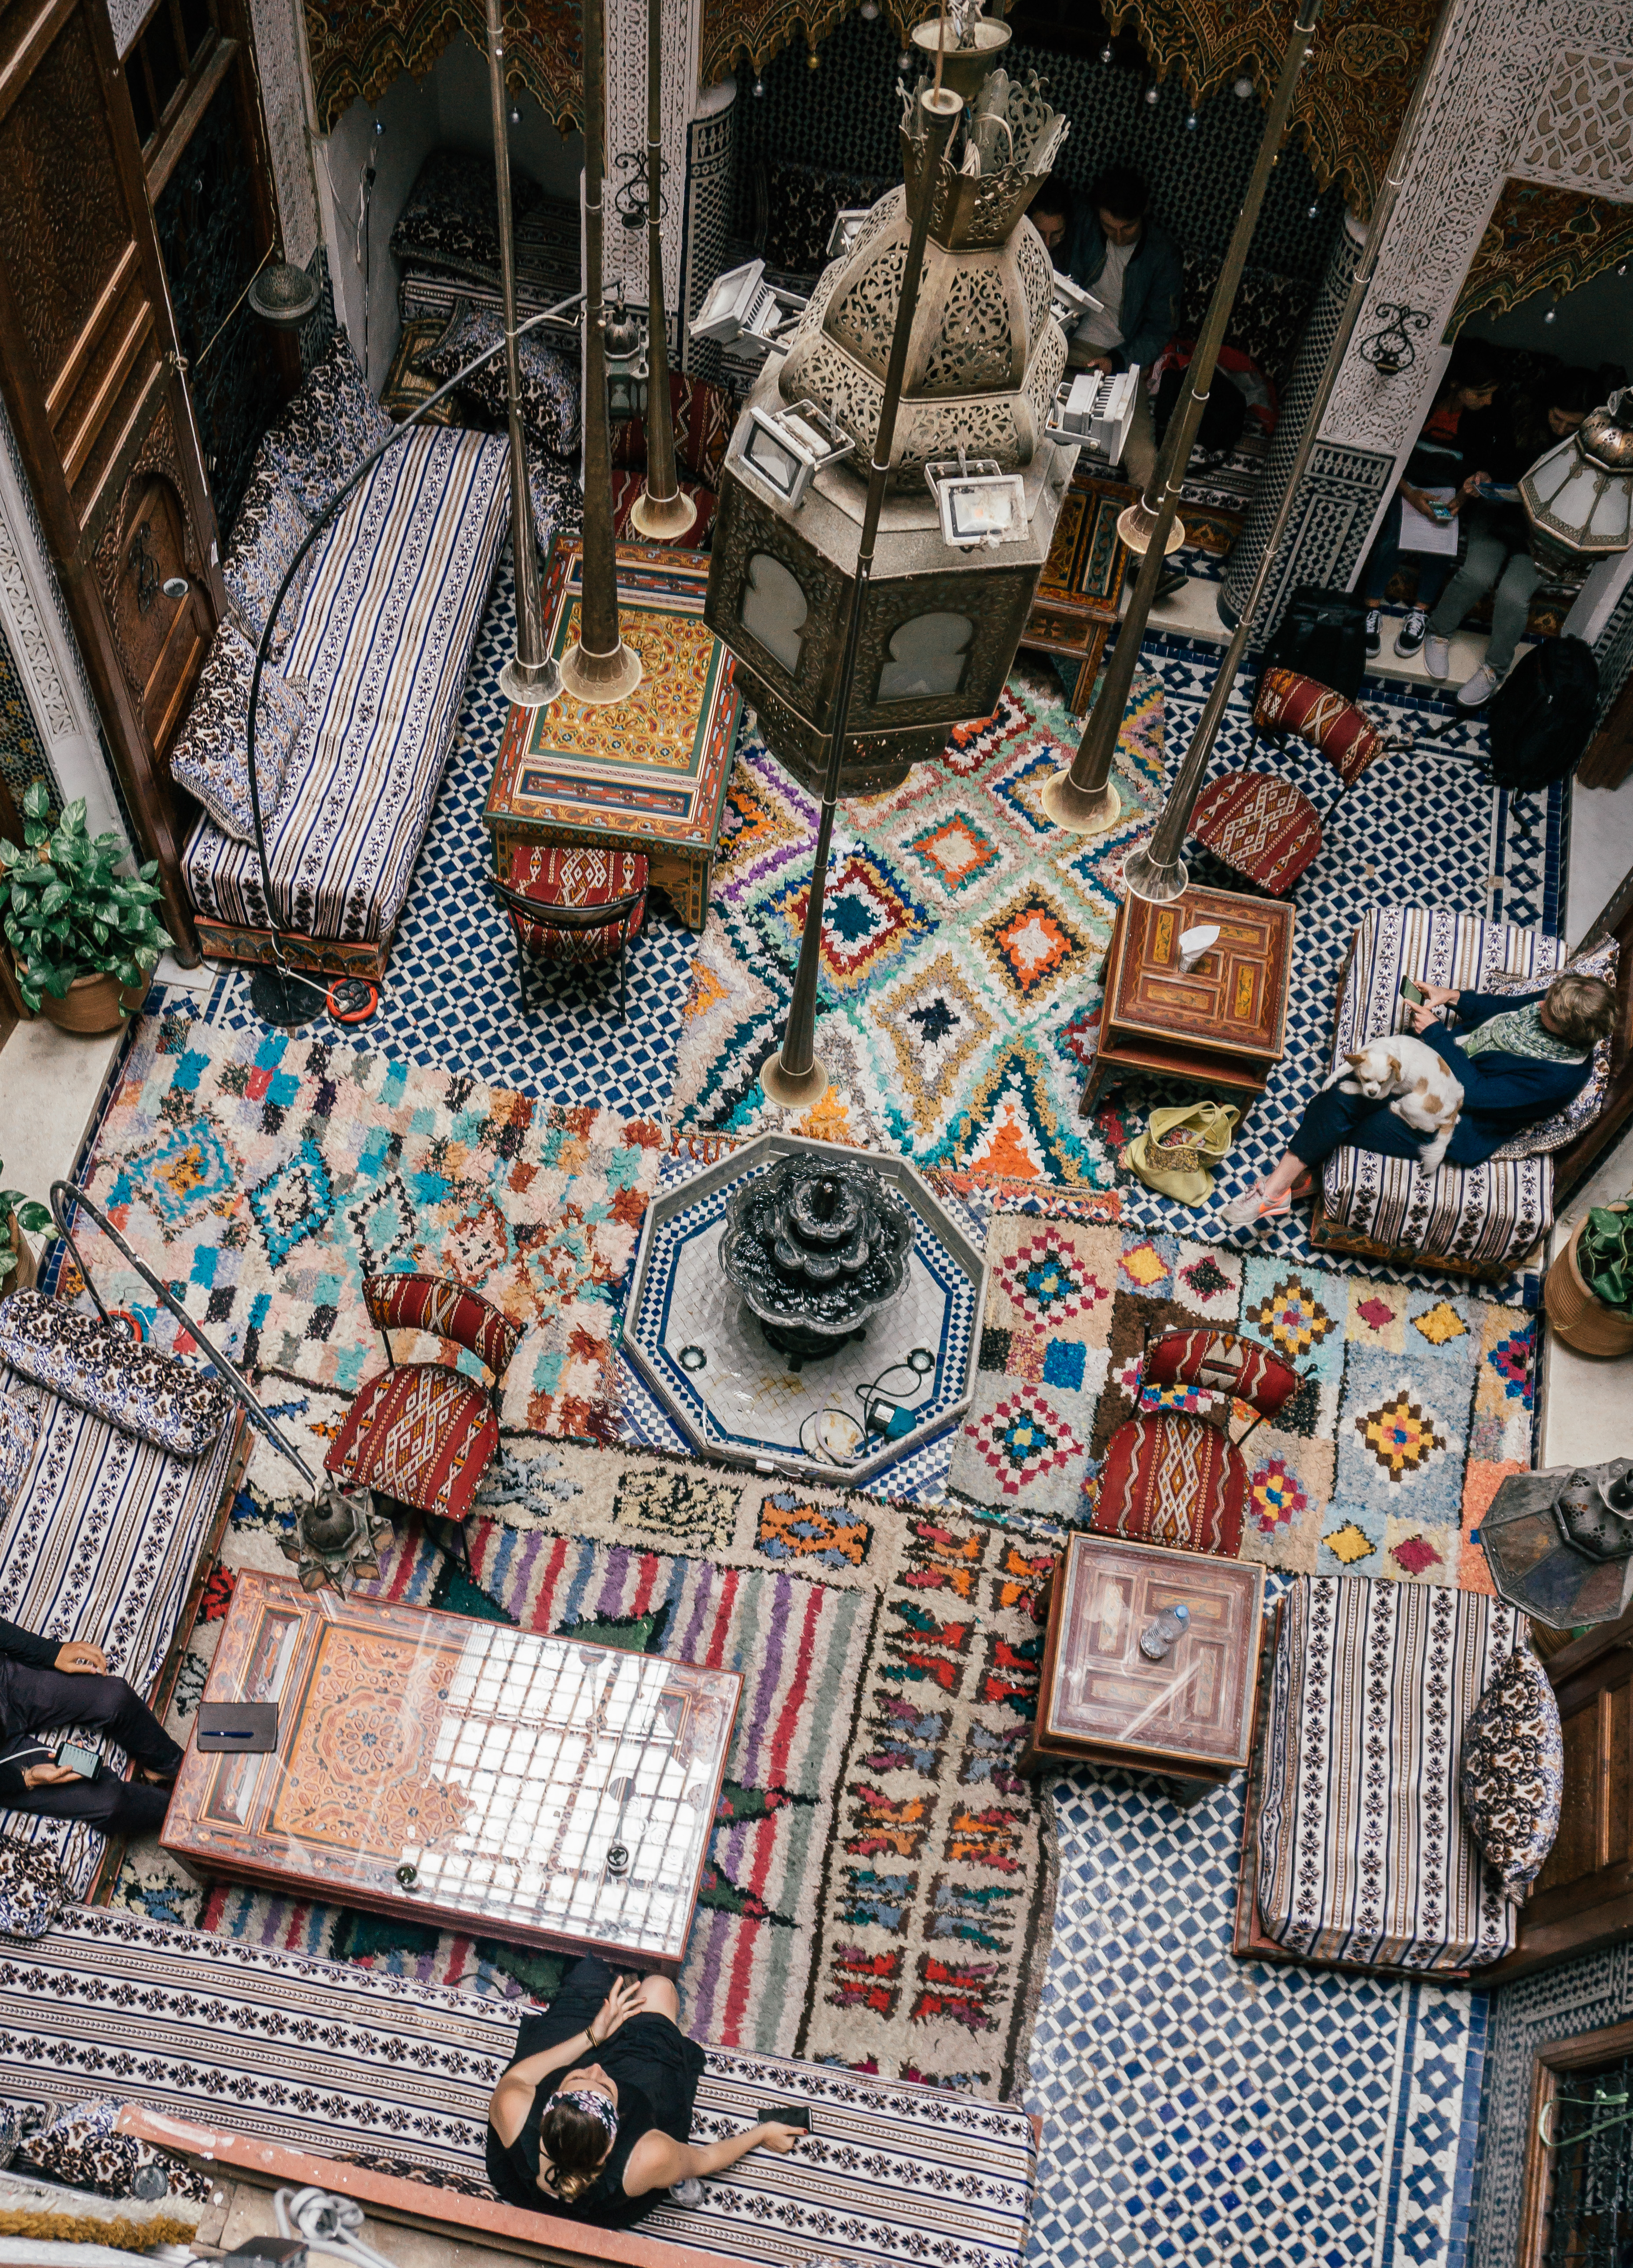 Things to do in Fes, Morocco - Stay at Riad Verus